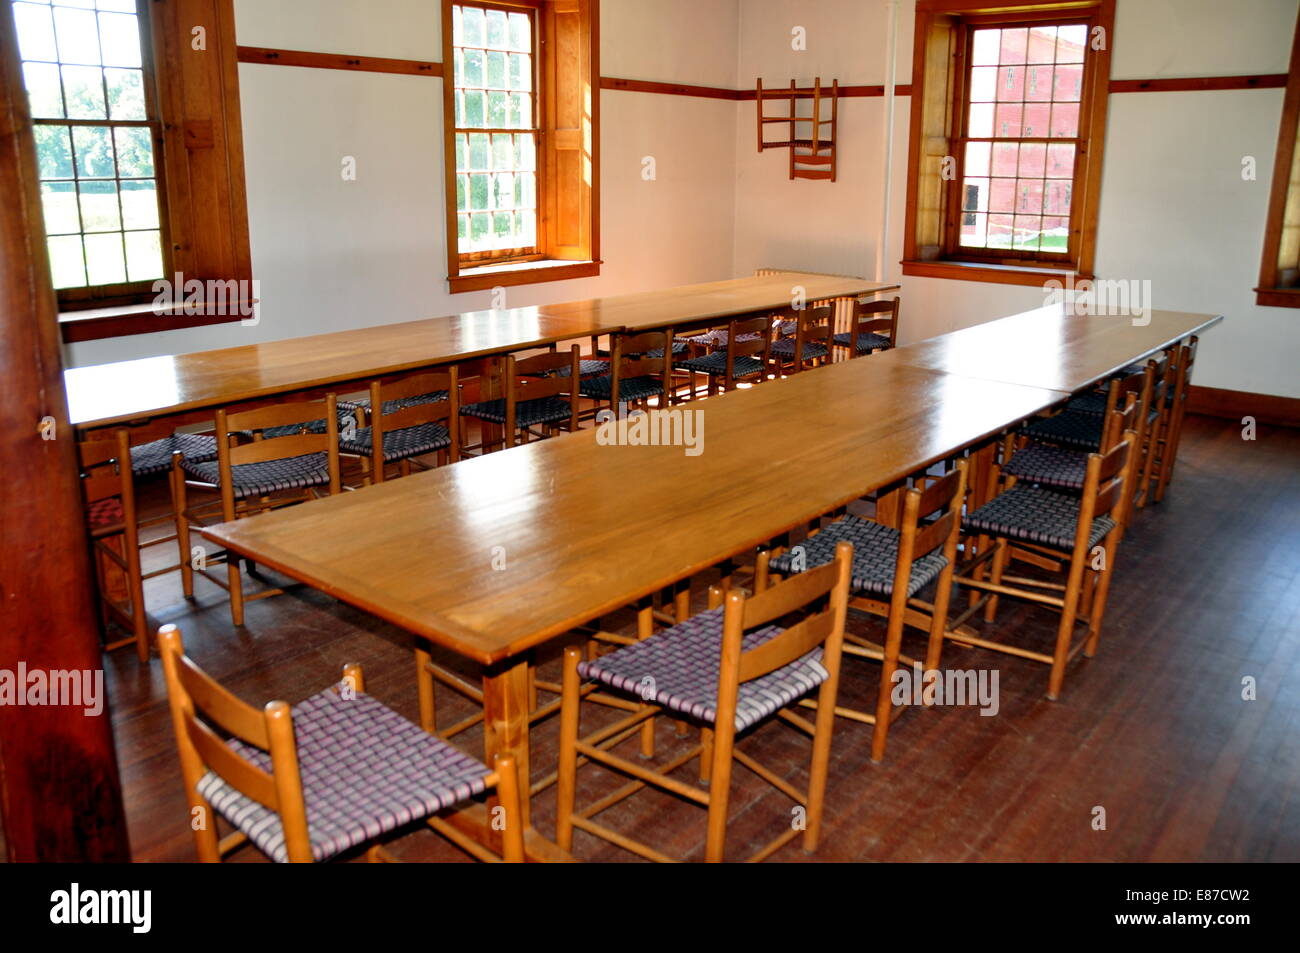 hancock massachusetts wooden communal dining tables and chairs